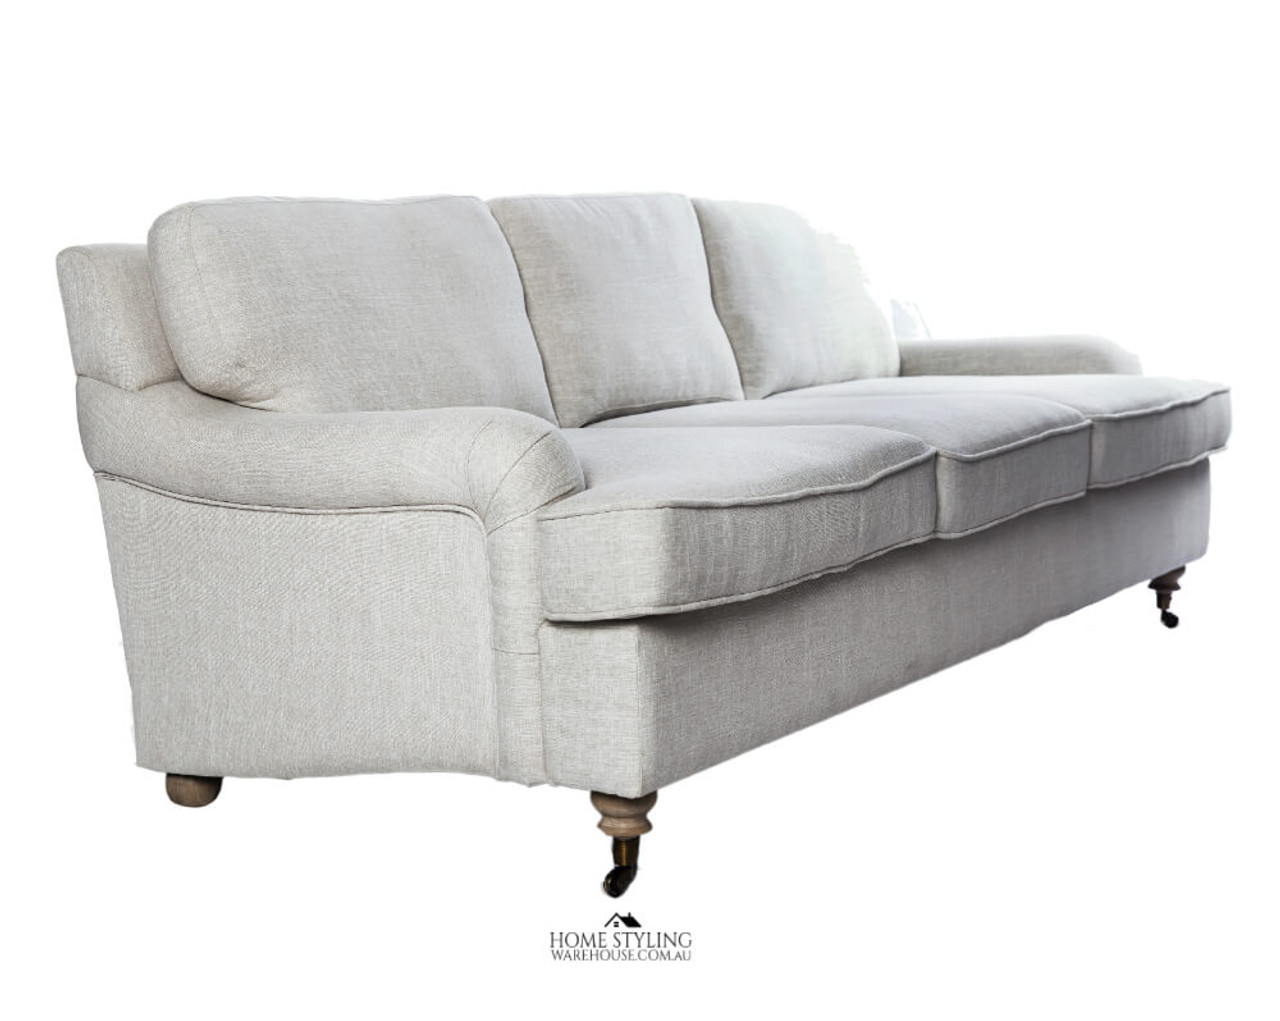 Swell Hamptons Style Sofa Couch Cream 3 Seater Rolled Arms Wheels Standard Oatmeal Color Gamerscity Chair Design For Home Gamerscityorg